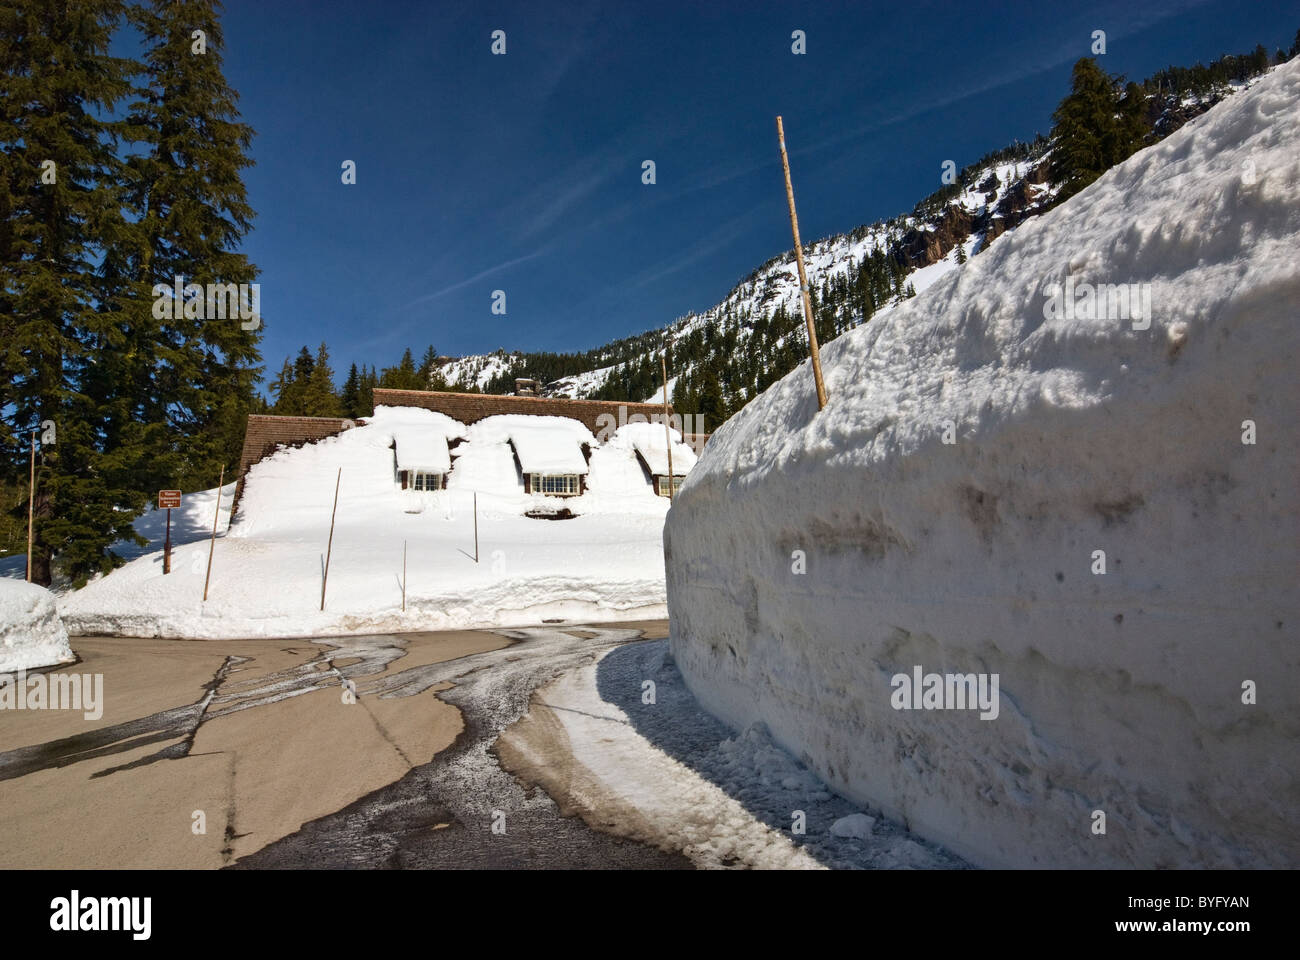 Walls of snow in winter around Steel Park Headquarters at Crater Lake National Park, Oregon, USA - Stock Image